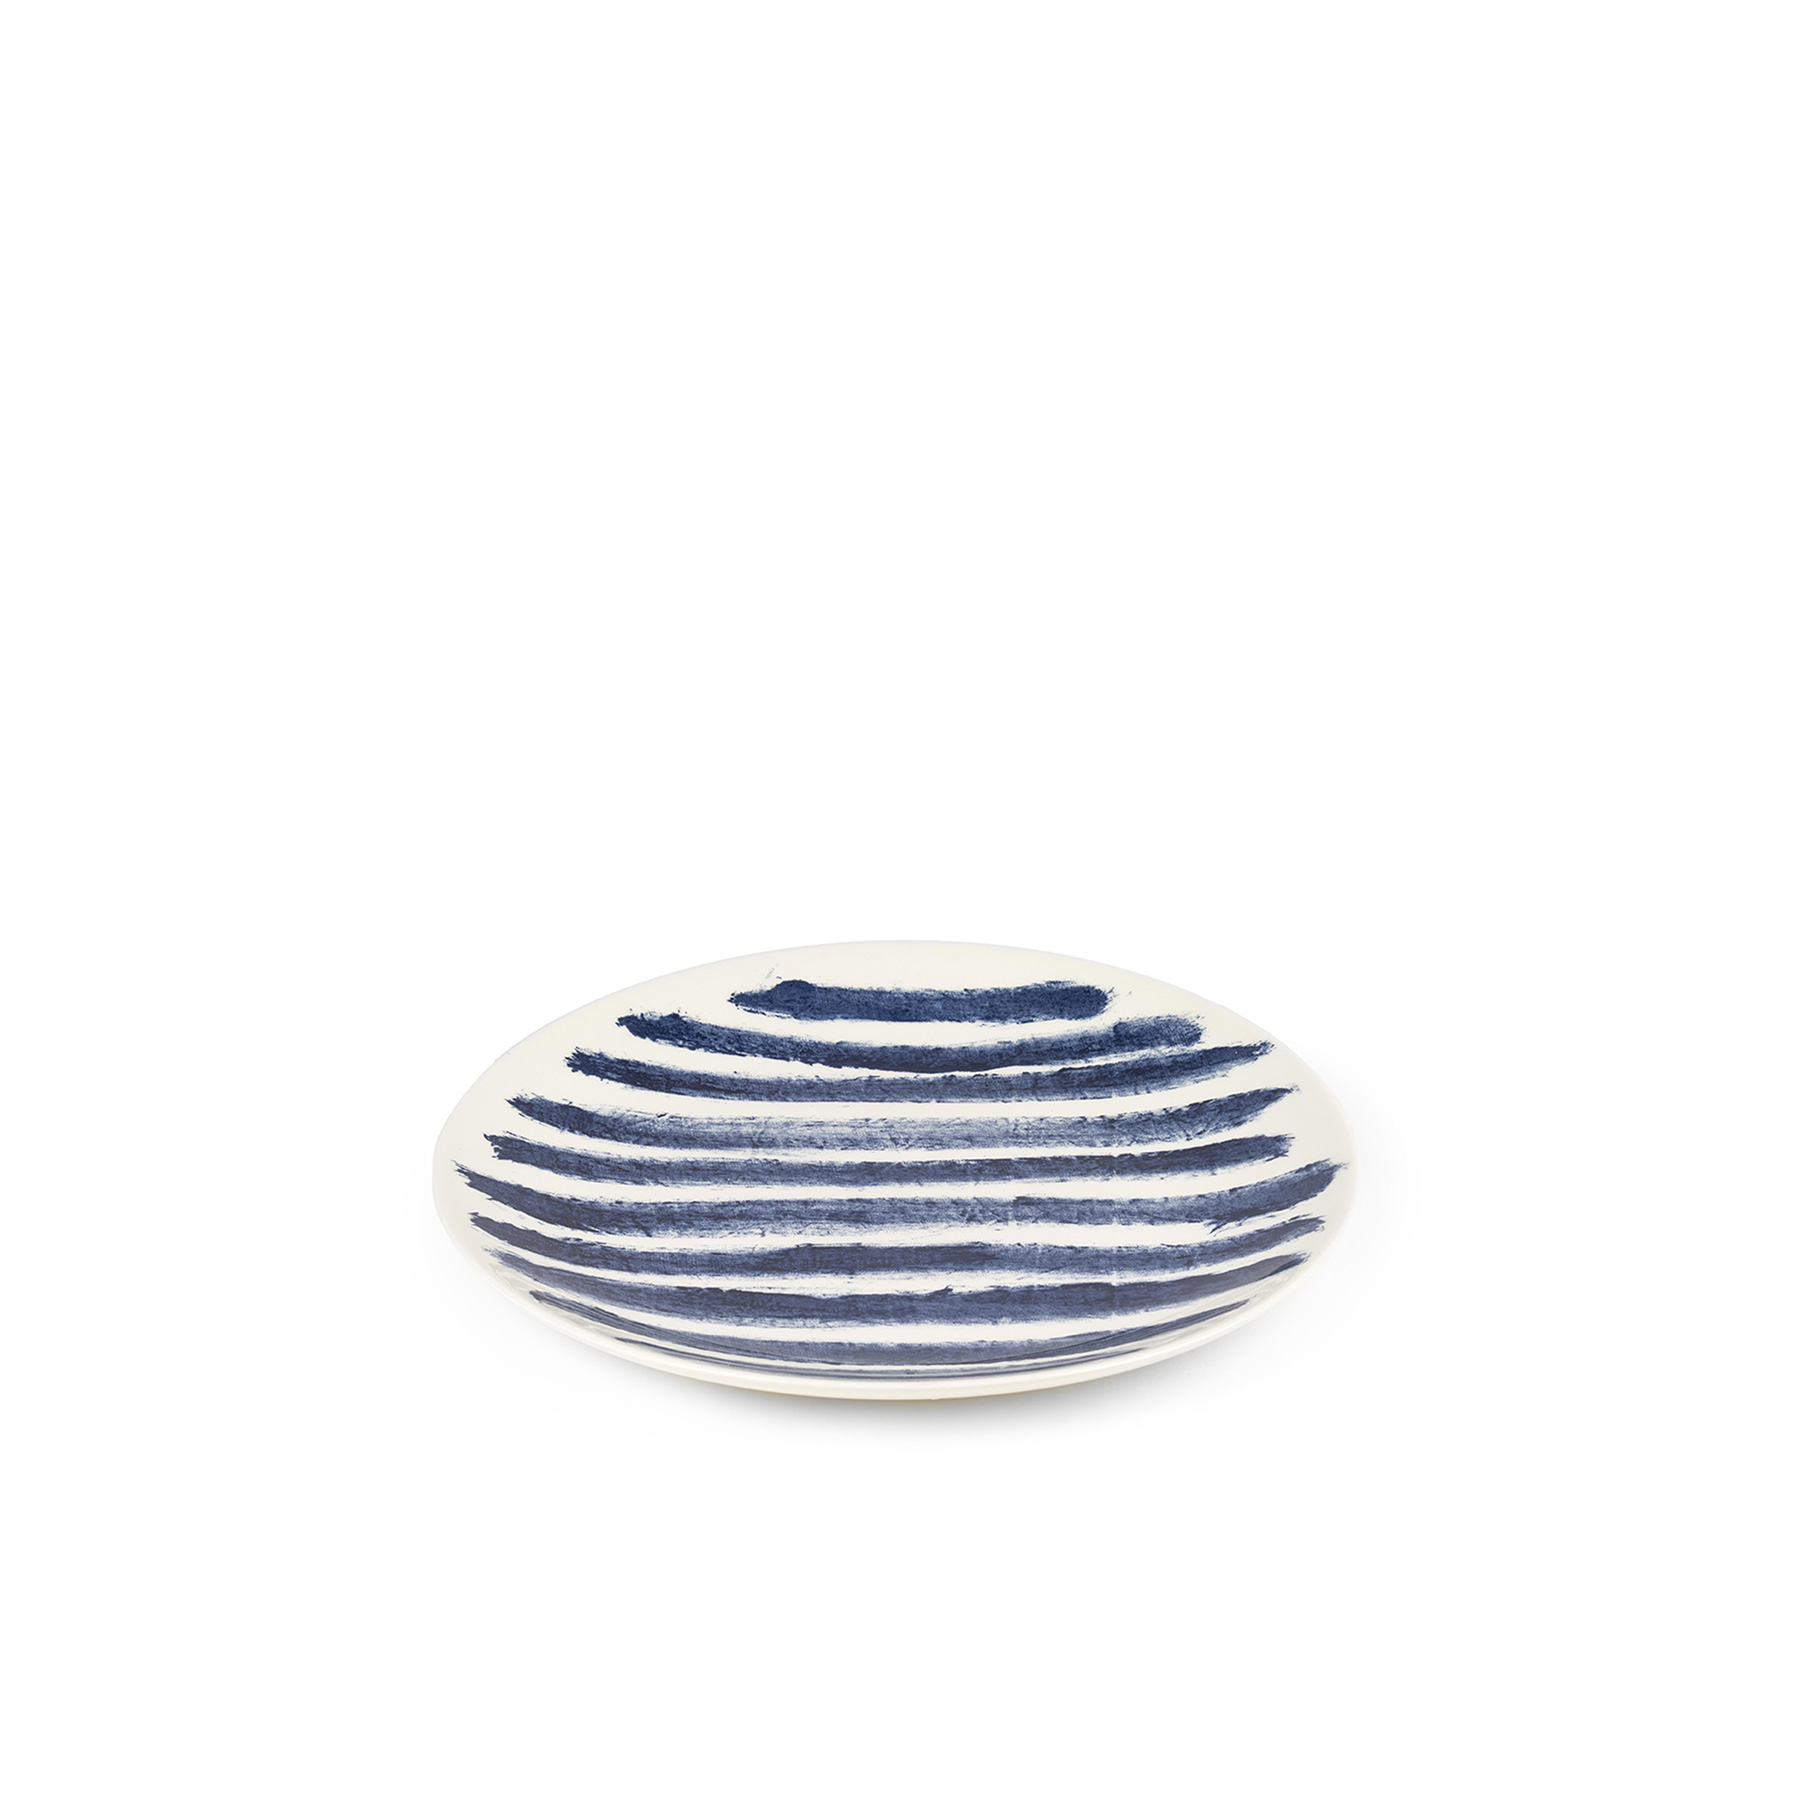 Indigo Rain Dinner Plate - Faye Toogood's addition to her range of ceramic designs for 1882 Ltd. puts a fresh spin on the forms and traditions of English creamware. Indigo Rain reinterprets the homely familiarity of blue-and-white striped crockery in a new design informed by the spirit of serendipitous discovery. Representing a streamlined take on our ceramic heritage, the fine earthenware employs the familiar tones of English Delftware: cream offset with a rich, deep blue. Broad bands of indigo glaze, like painterly washes of watercolour, are applied to rough canvas and then transferred to the pieces – the characteristic grain of the fabric imbues the delicate ceramics with the hardworking spirit of dark-dyed denim.  | Matter of Stuff